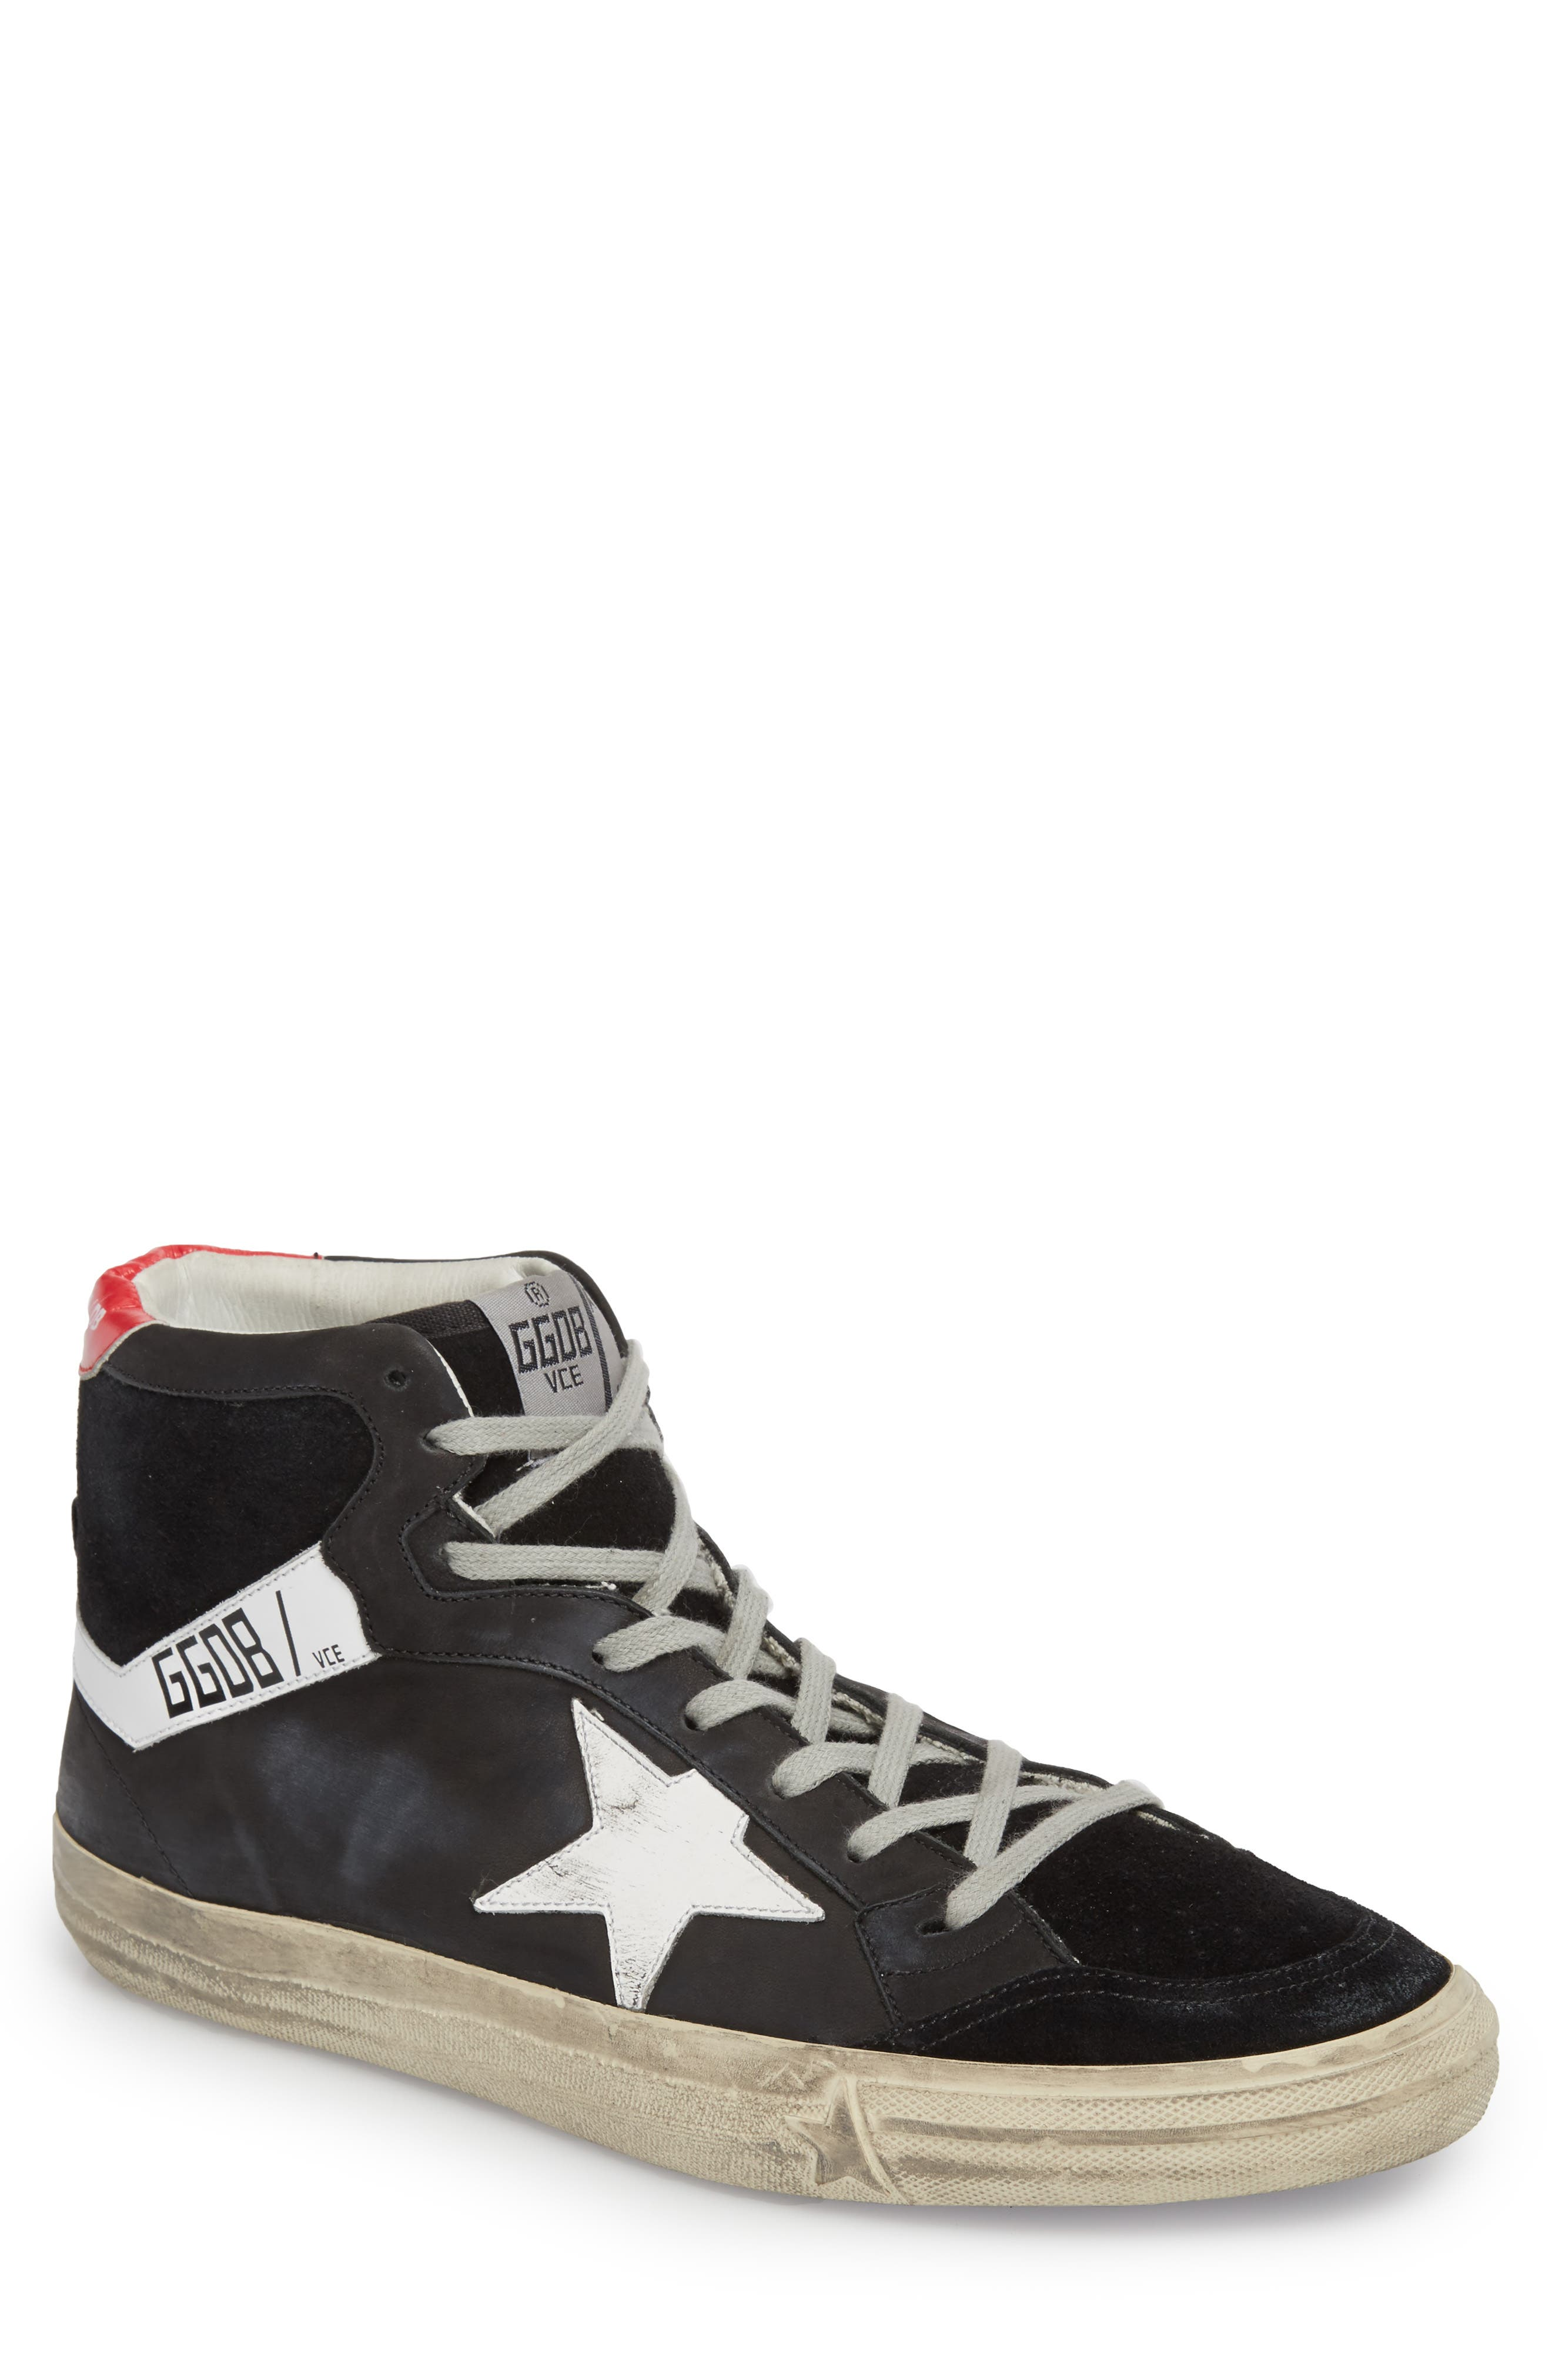 Alternate Image 1 Selected - Golden Goose High Top Sneaker (Men)